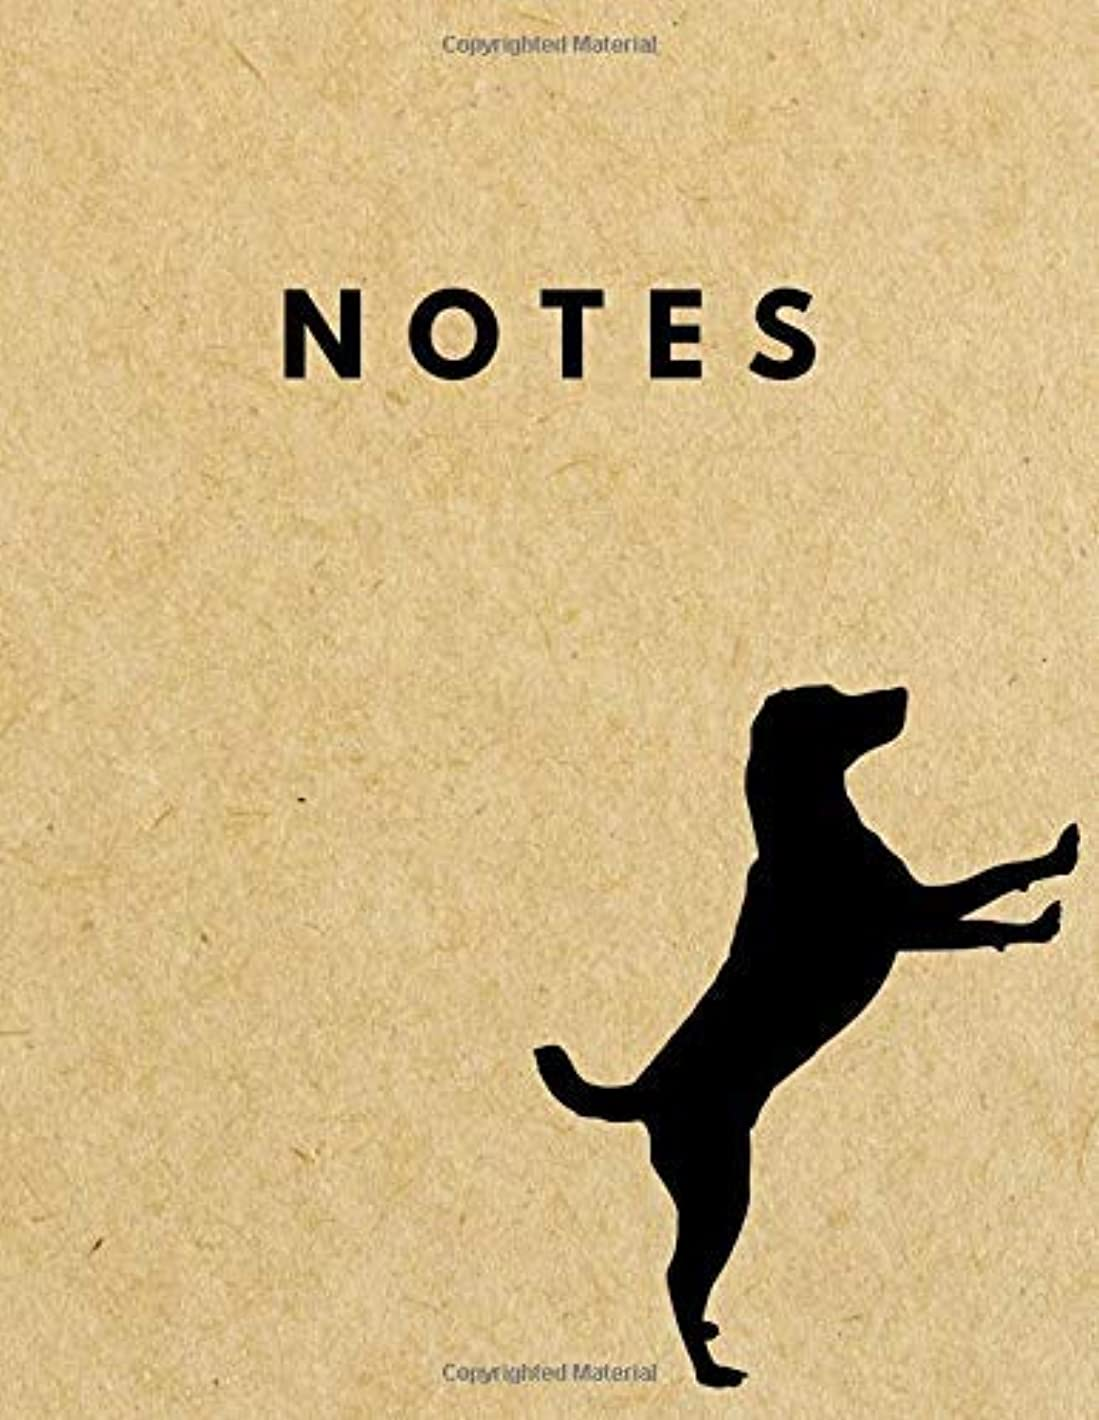 Notes: Unlined Plain Retro Notebook | Large (8.5 x 11 inches) Letter Size | 120 unruled pages | Standing Dog Brown Paper Soft Cover [並行輸入品]